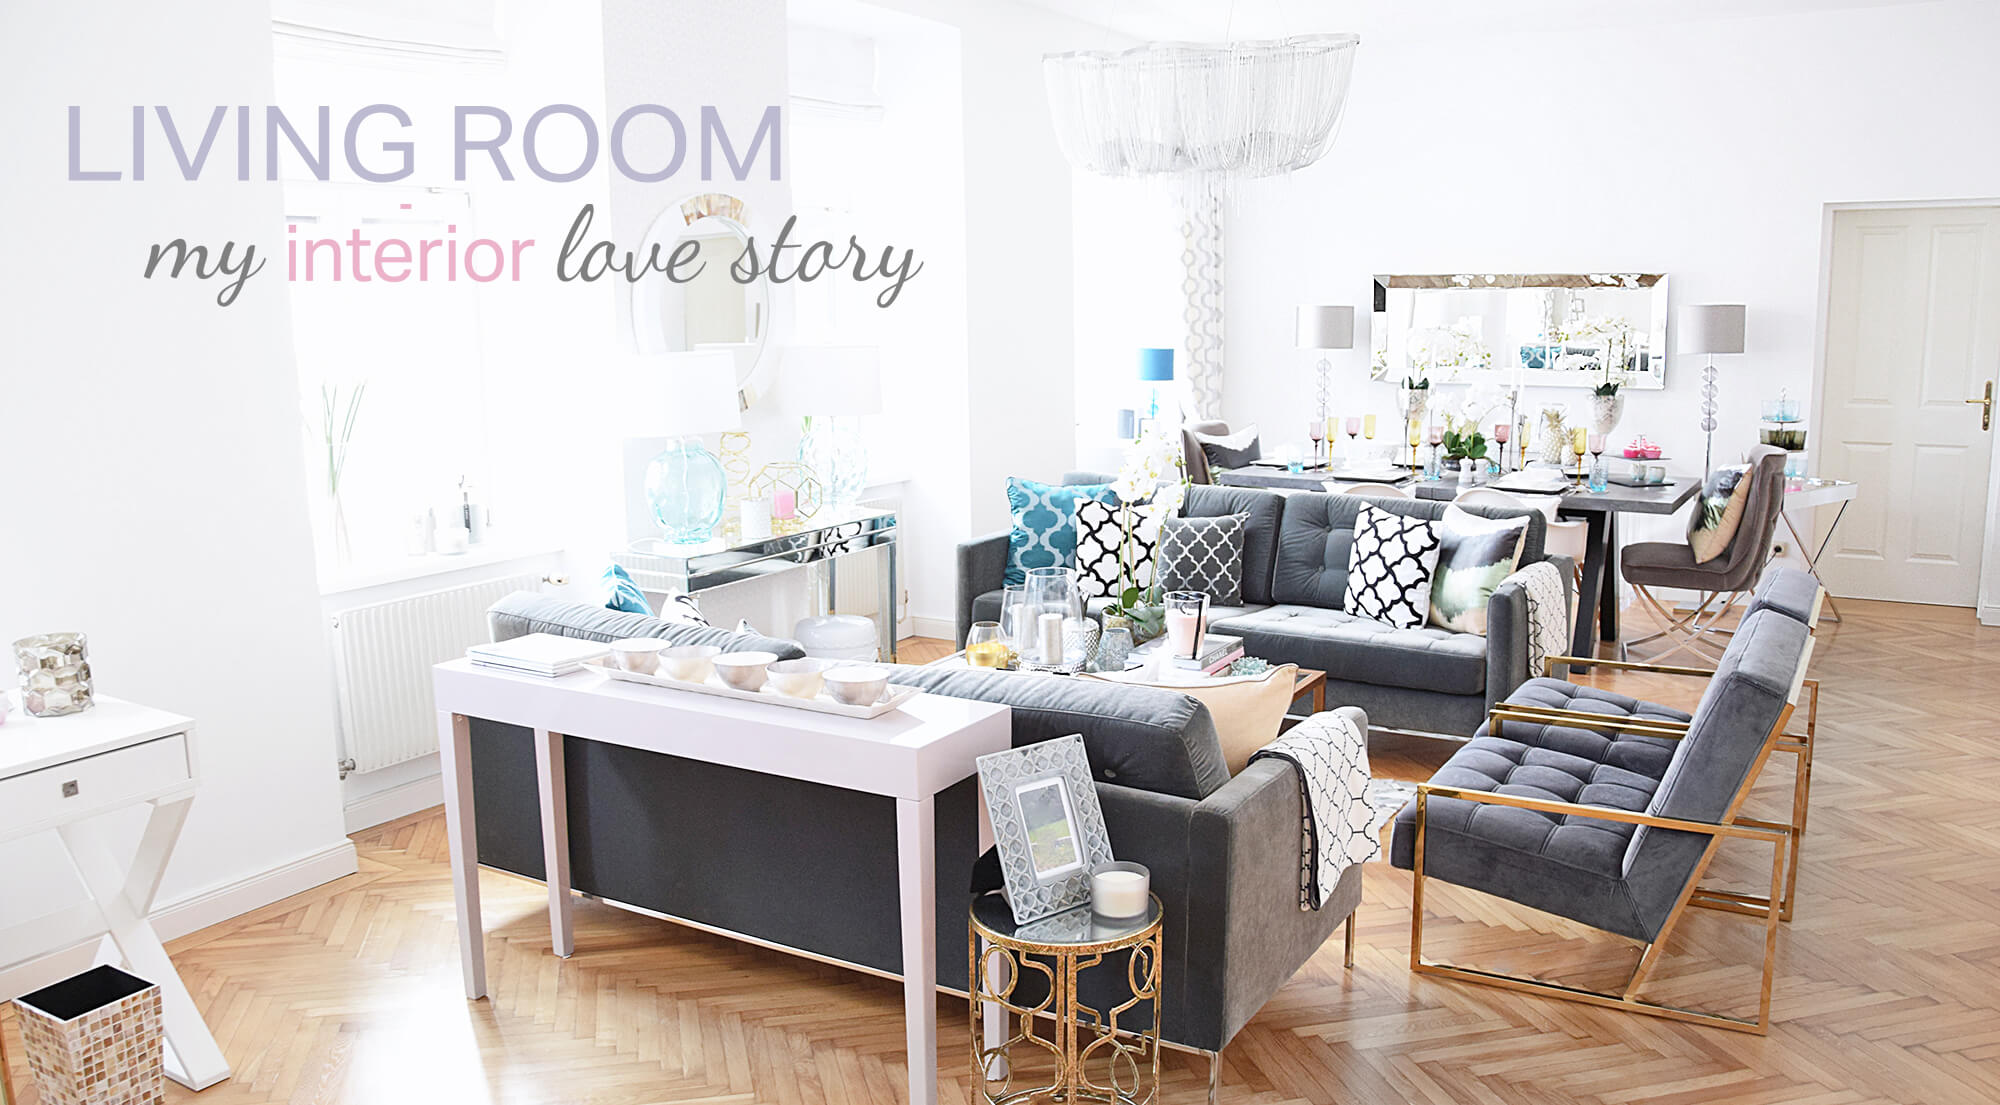 my interior love story living room